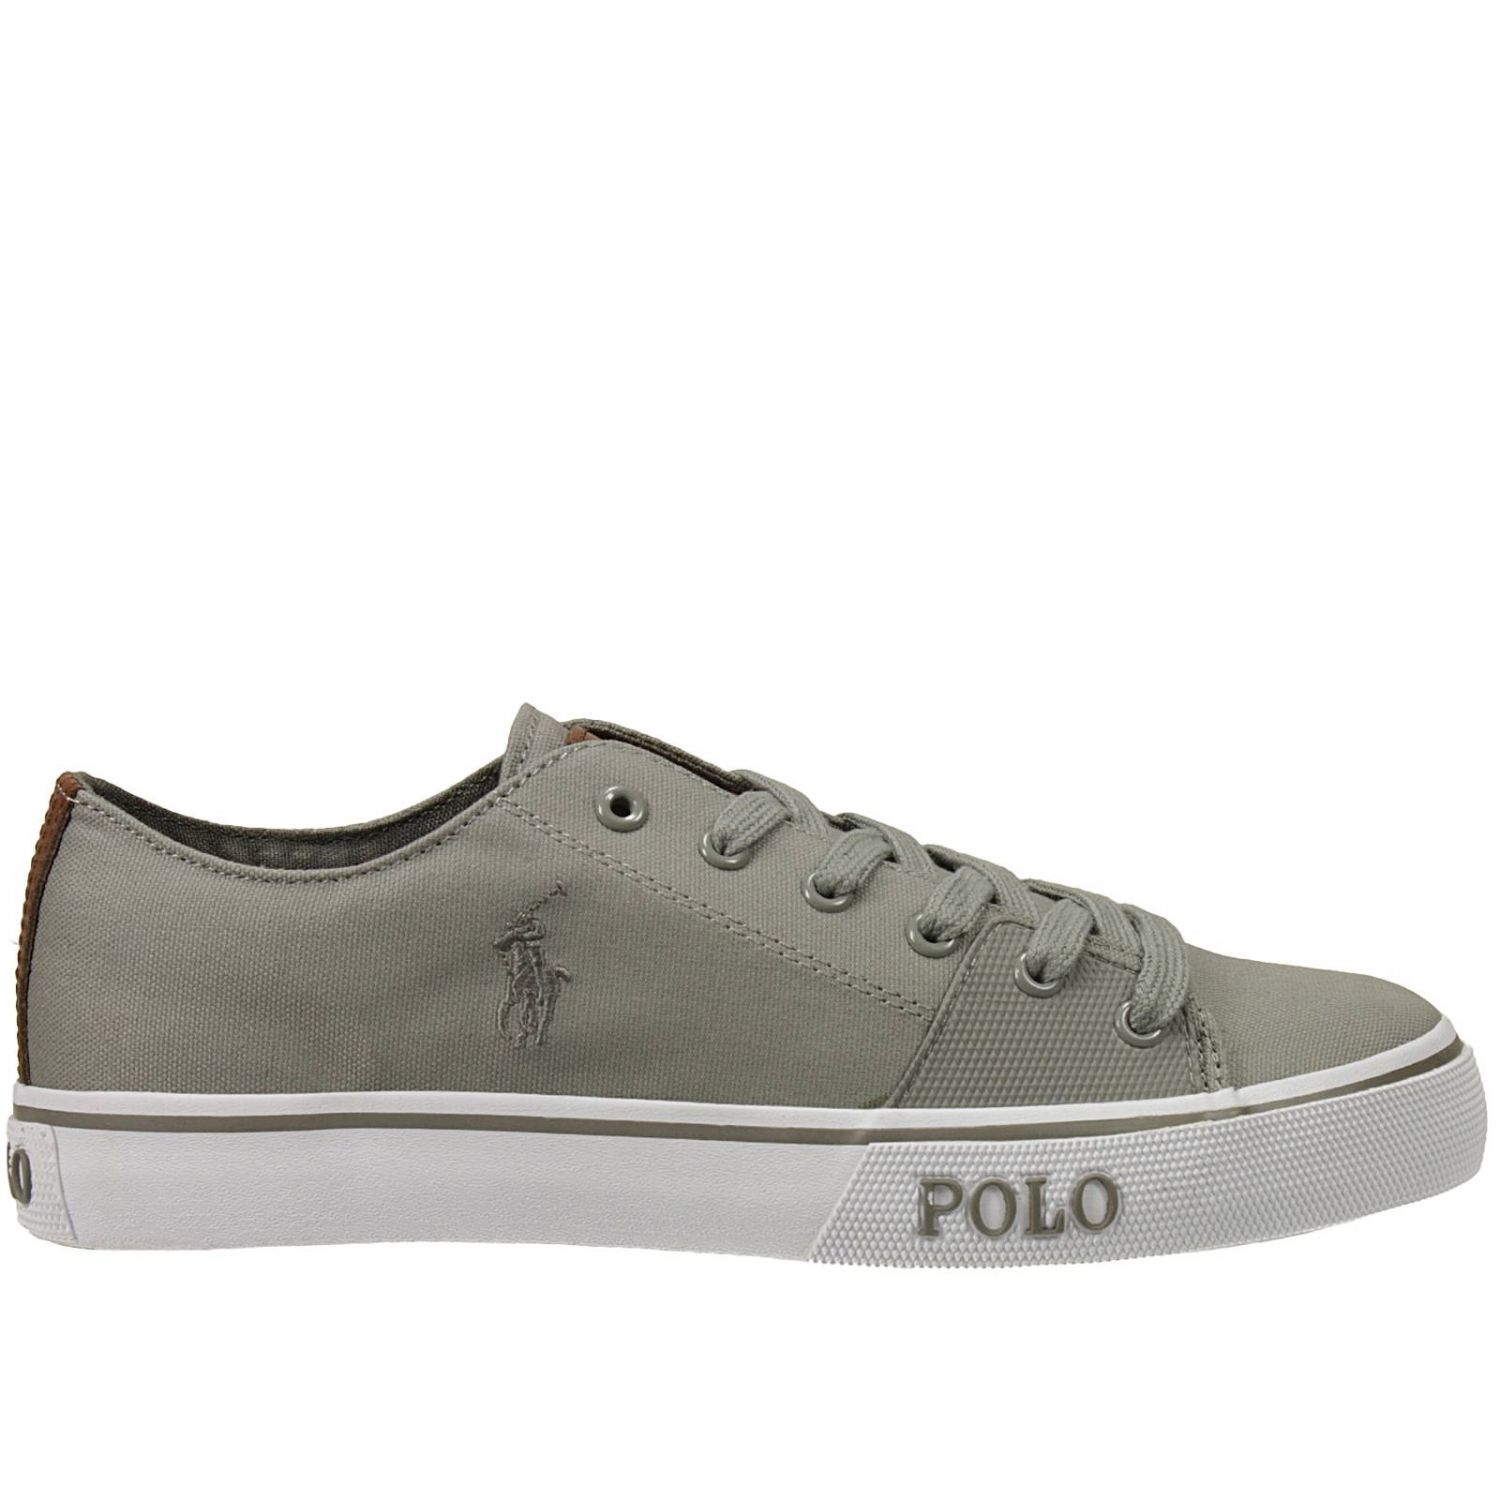 polo ralph lauren cantor low ne sneakers canvas e gomma con logo in gray for men lyst. Black Bedroom Furniture Sets. Home Design Ideas